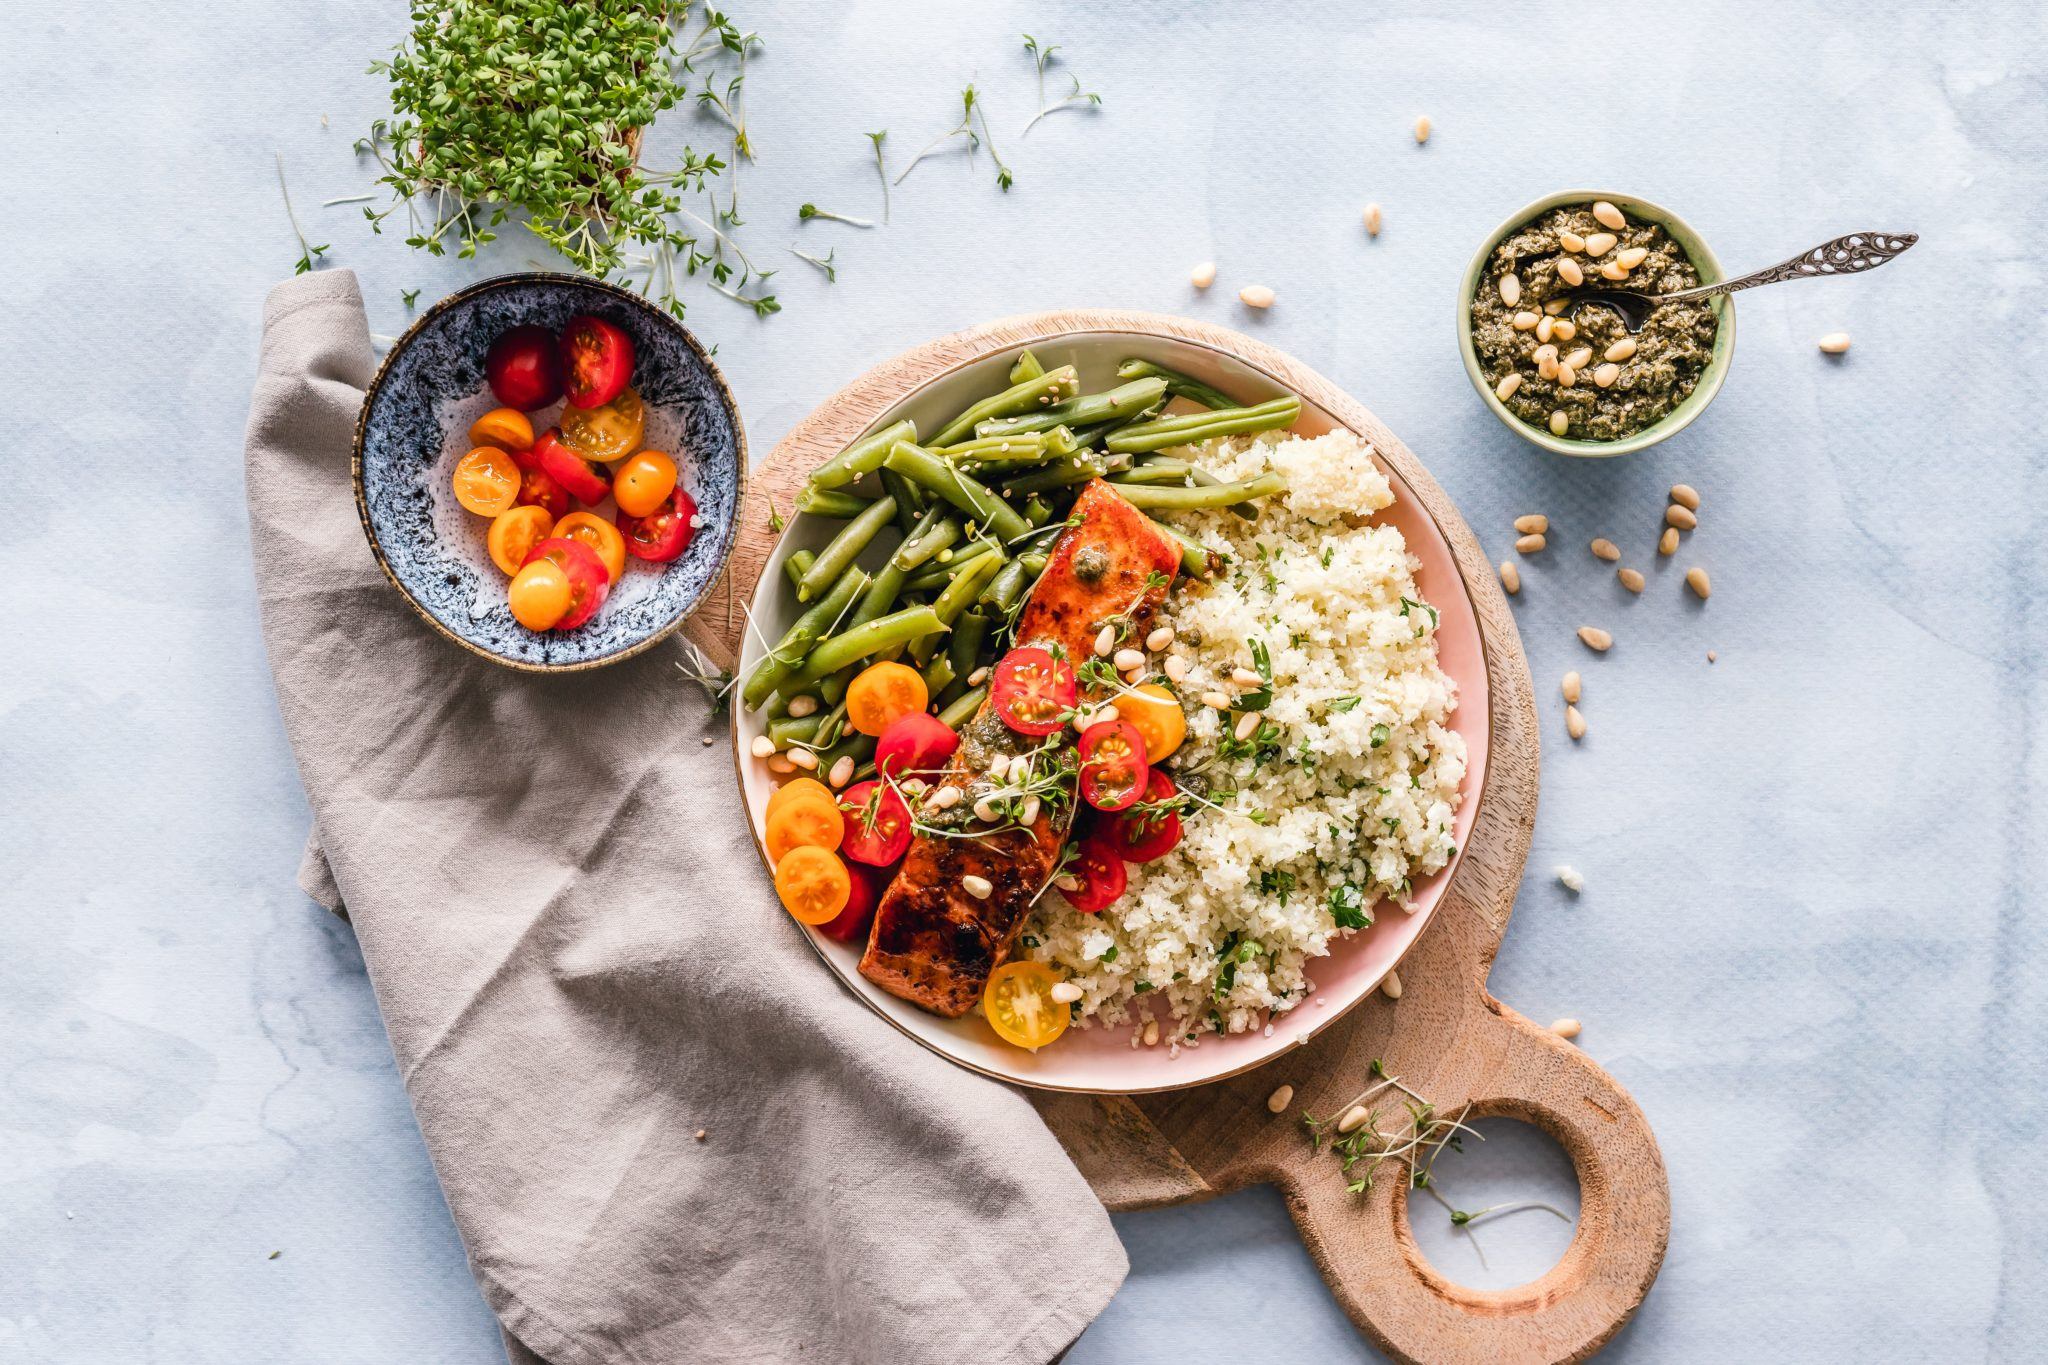 colorful vegetable grain bowl with tomatoes, rice, lentils and herbs